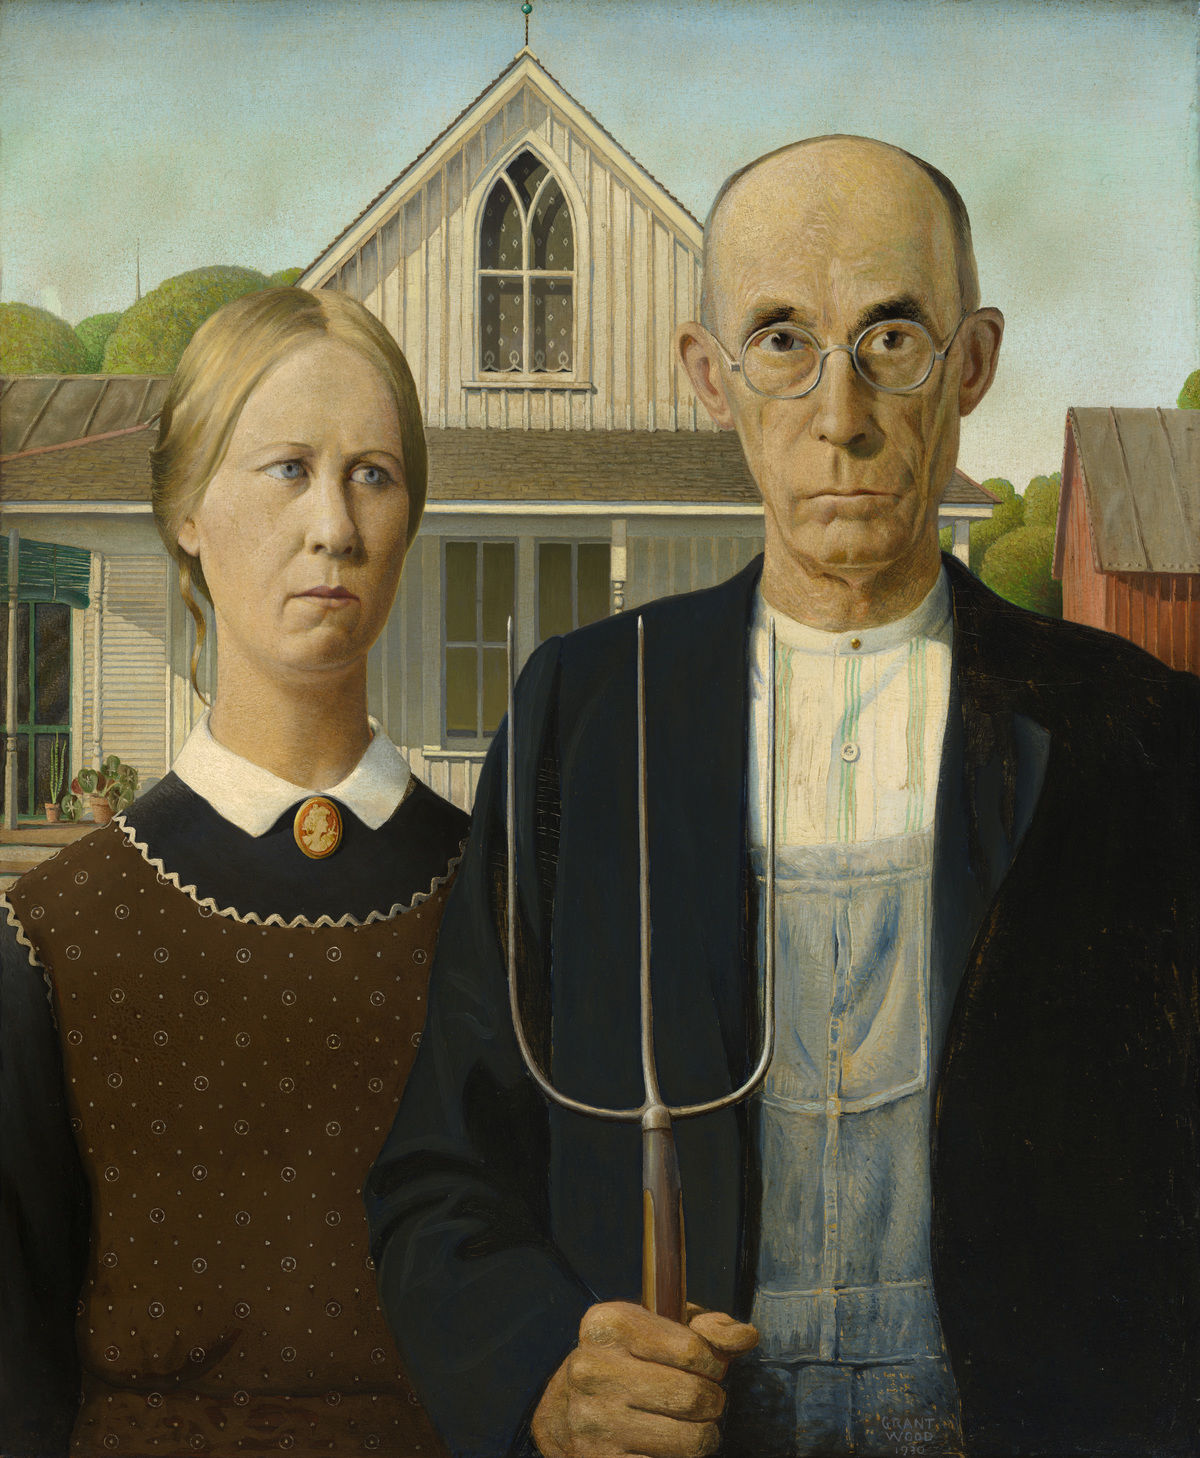 Grant Wood,  American Gothic , 1930, oil on canvas